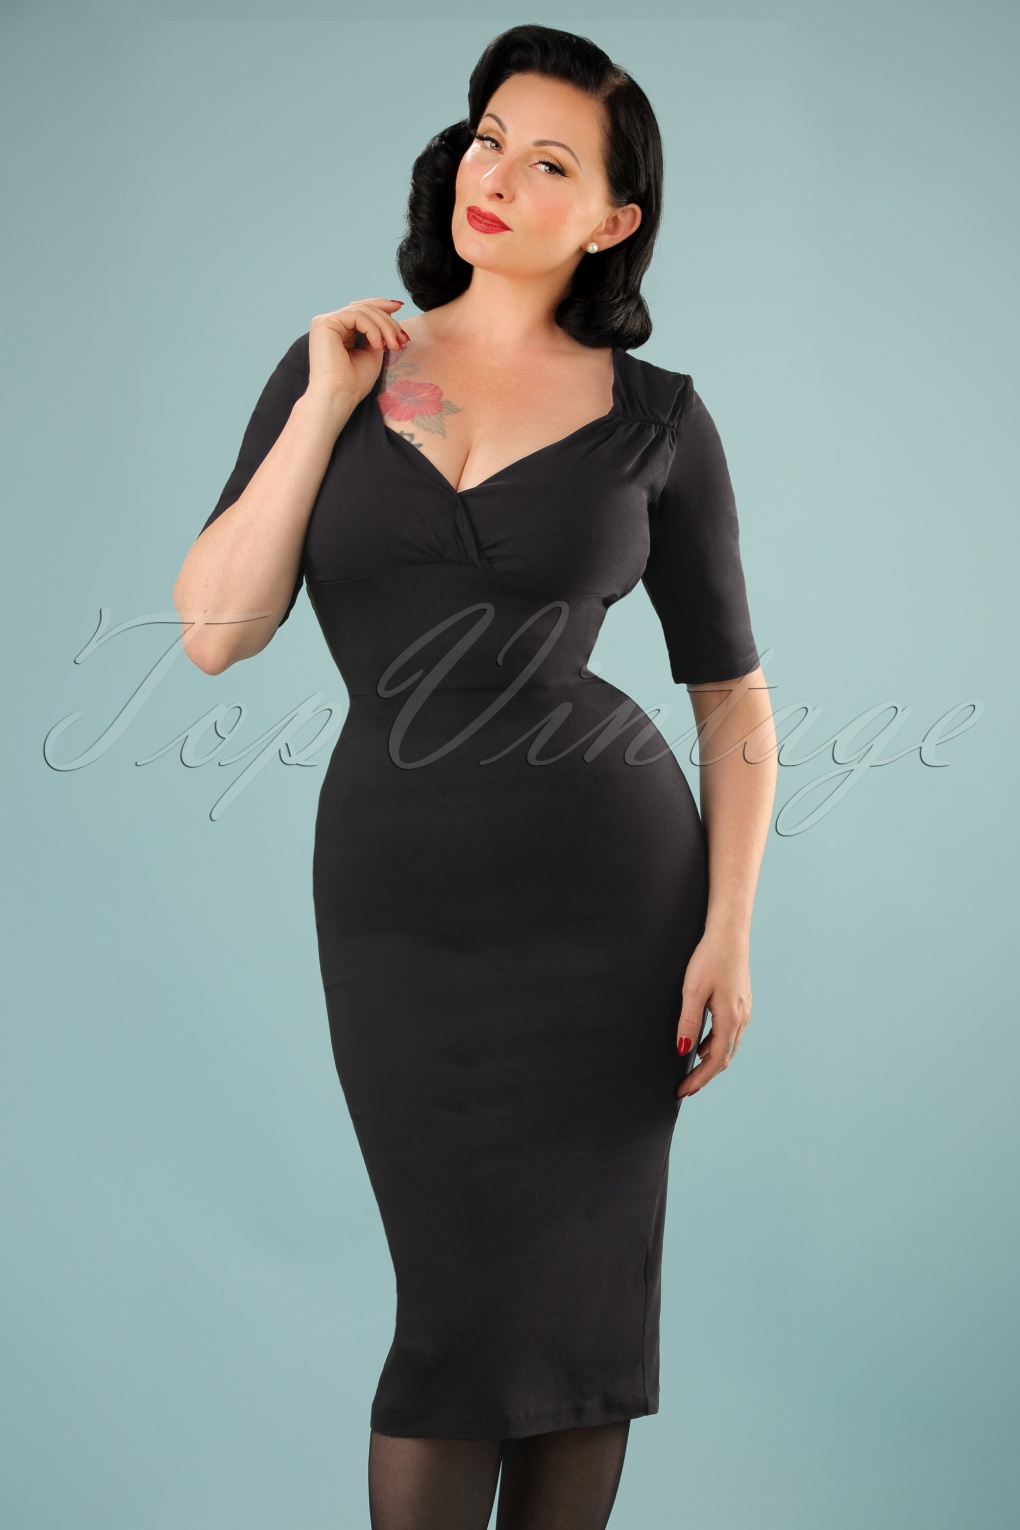 1950s Plus Size Dresses, Swing Dresses 50s Trixie Doll Pencil Dress in Black £47.90 AT vintagedancer.com